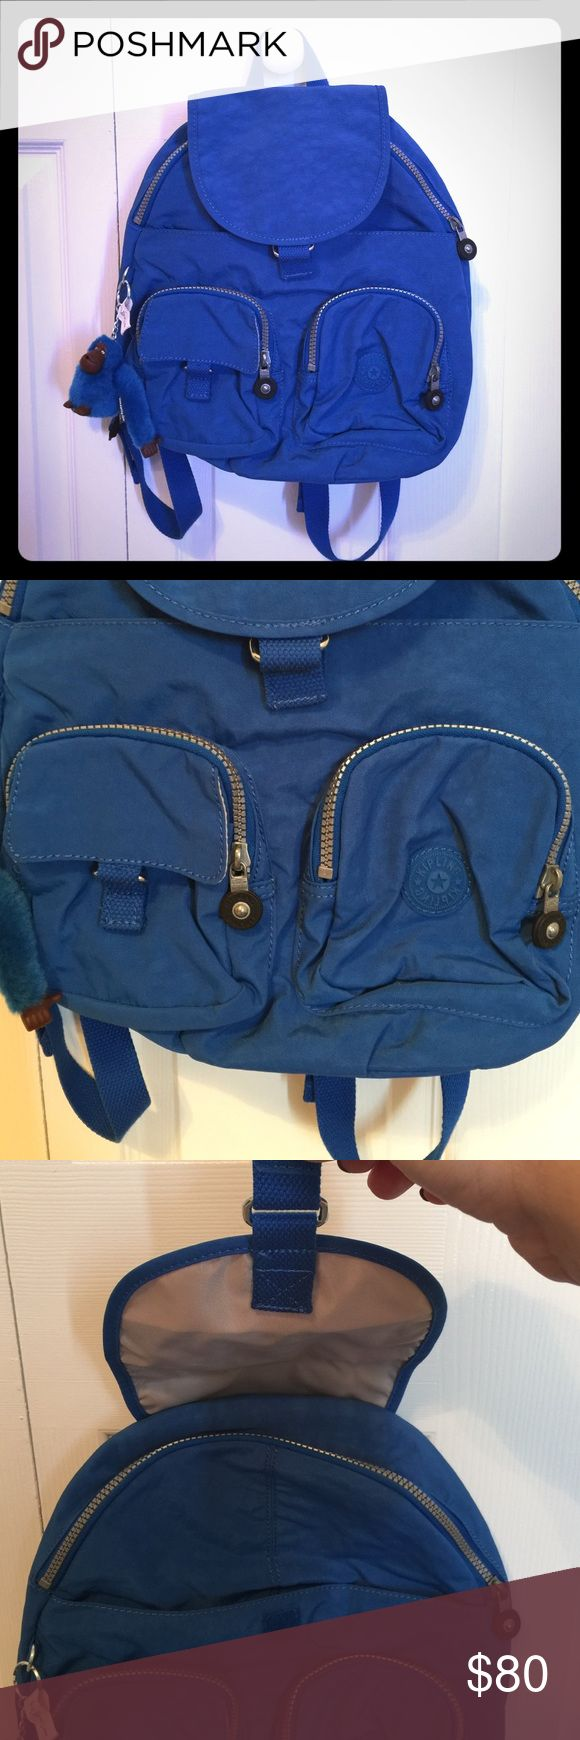 """Kipling """"Lovebug"""" Royal Blue Backpack! This is a small Kipling backpack and is new without tags (got it as a gift!) It has a TON of pockets and compartments to store things! It comes with a blue monkey named Joanna and the straps of the backpack are adjustable! Kipling Bags Backpacks"""